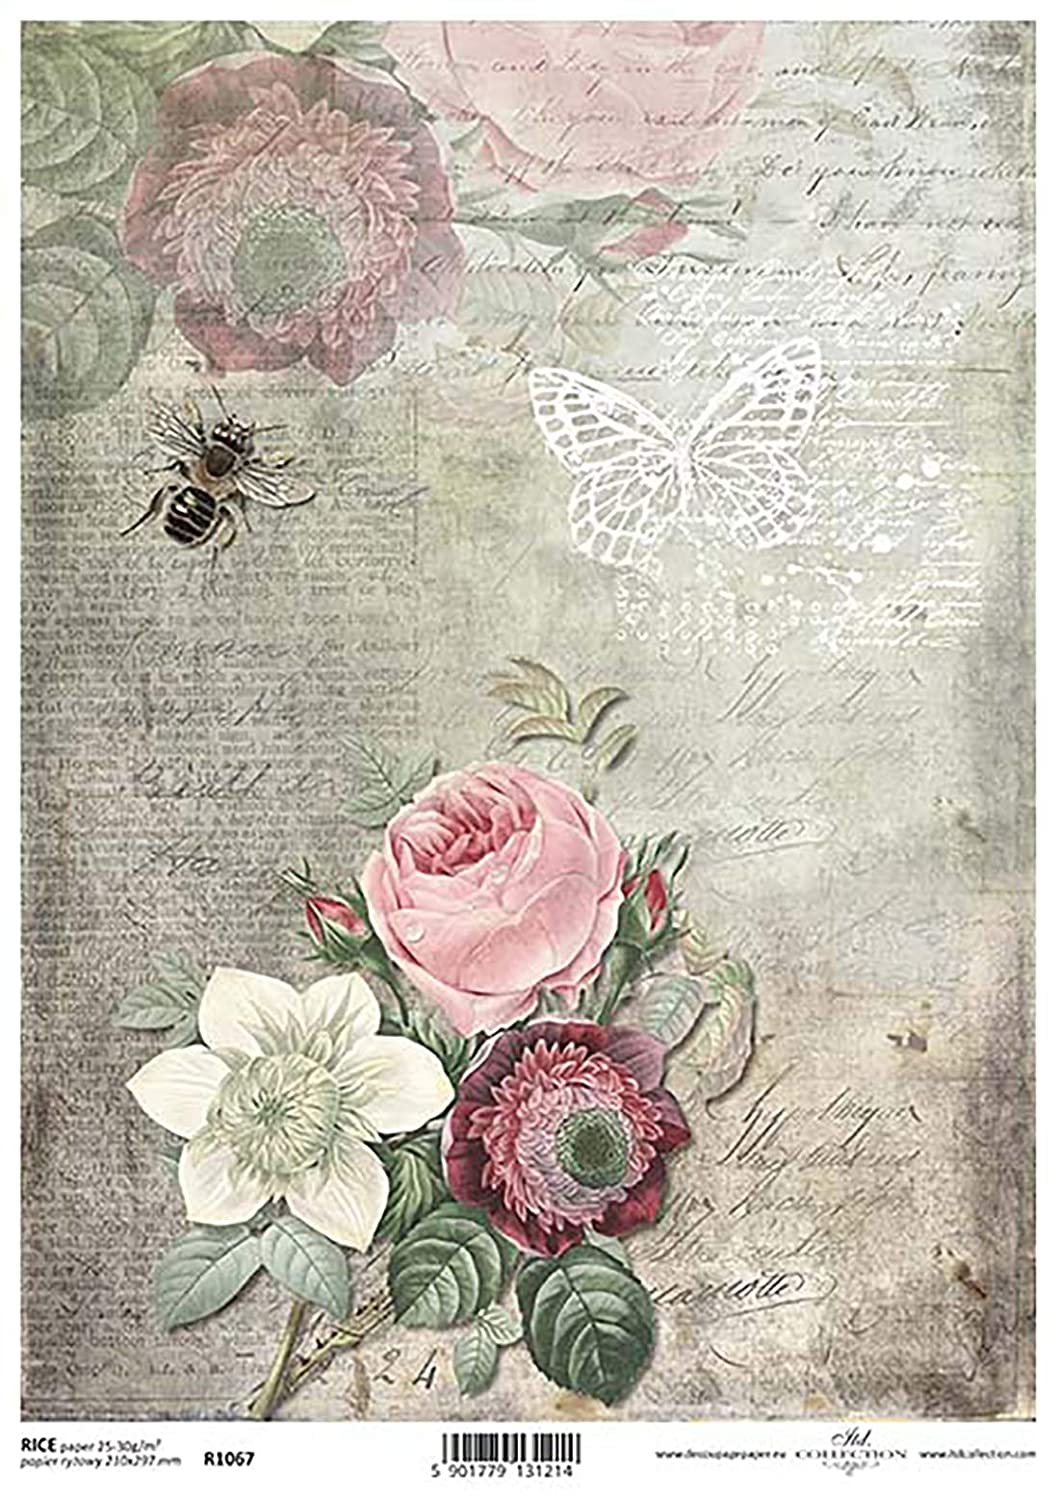 Flowers and Bee Sepia Decoupage Rice Paper R1067-1 x A4 Sheet of decoupage Rice Paper